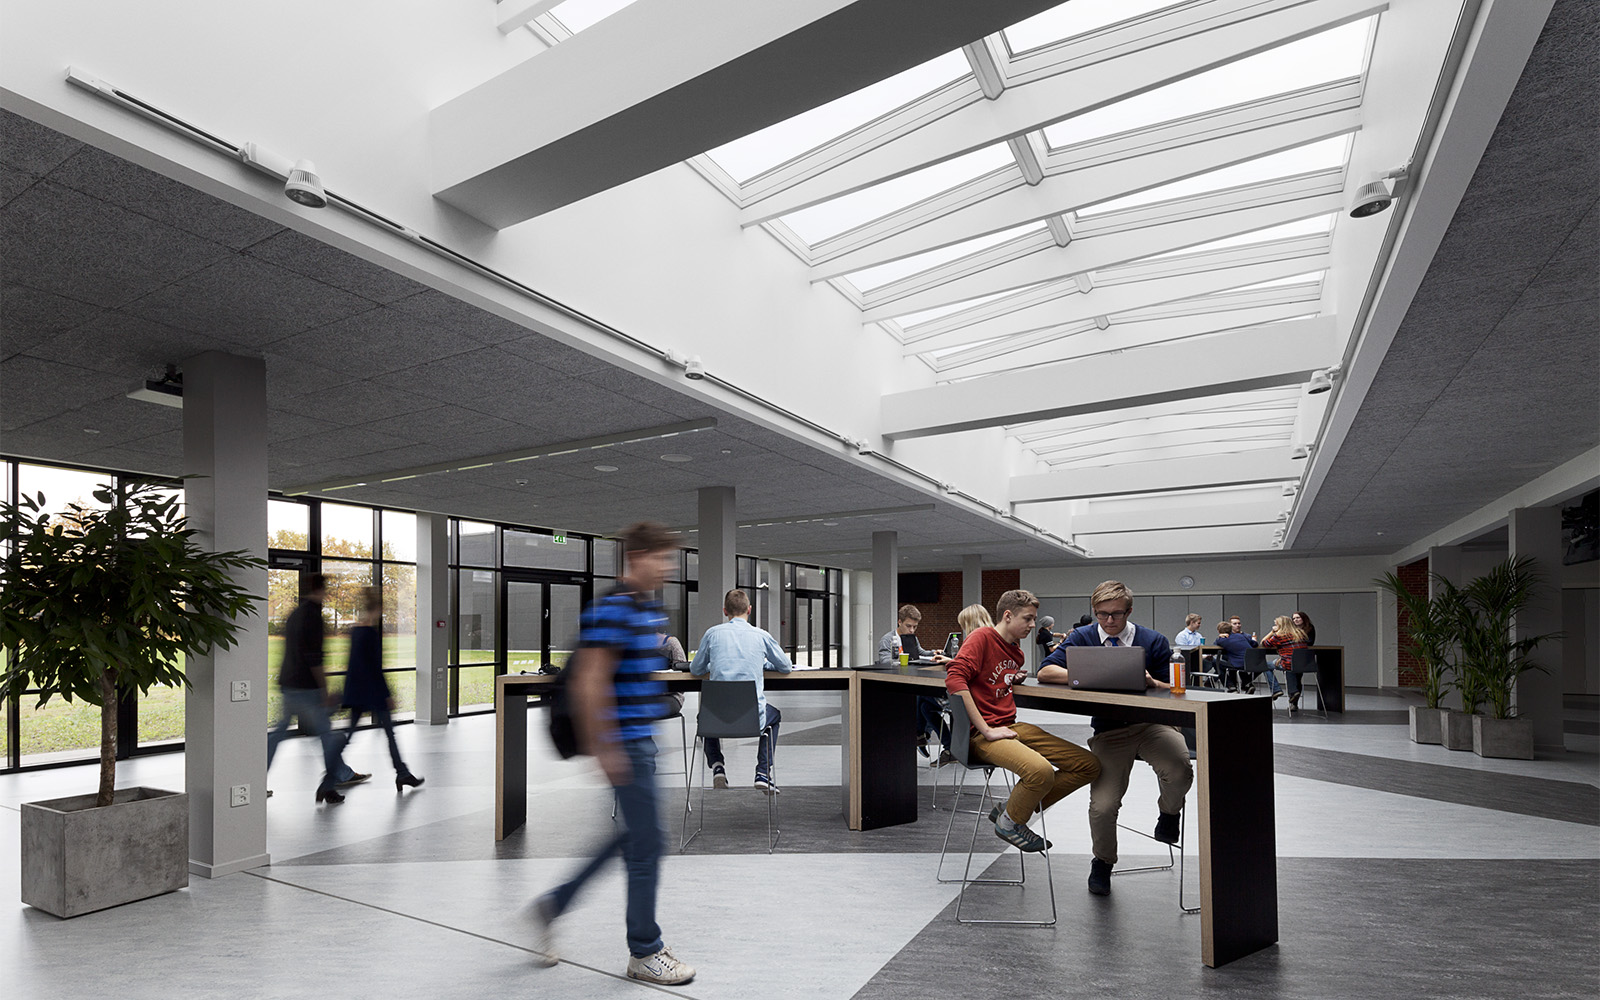 Lively school hall illuminated with natural light through VELUX skylights